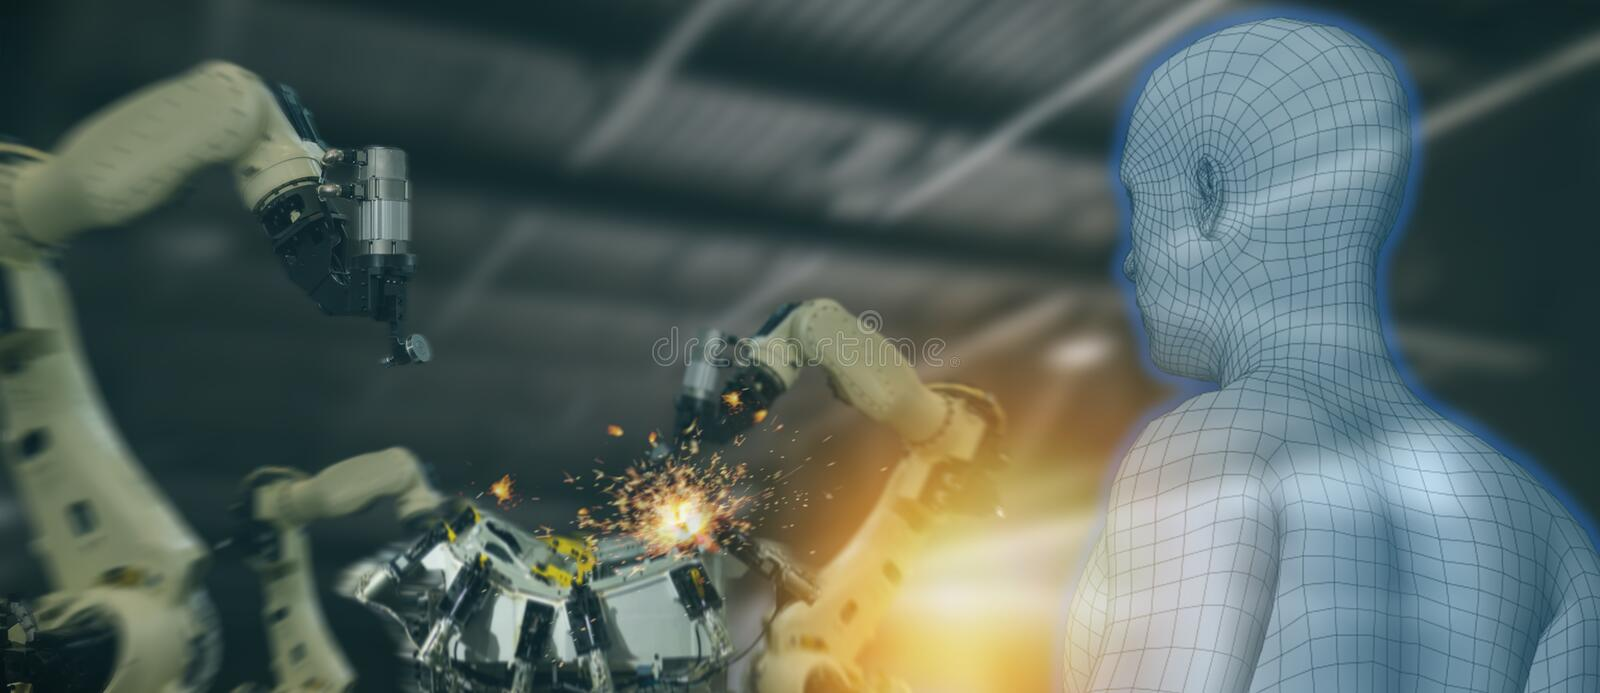 Iot industry 4.0 concept,industrial engineer using artificial intelligence ai augmented, virtual reality to monitoring machine i. N real time.Smart factory use stock image